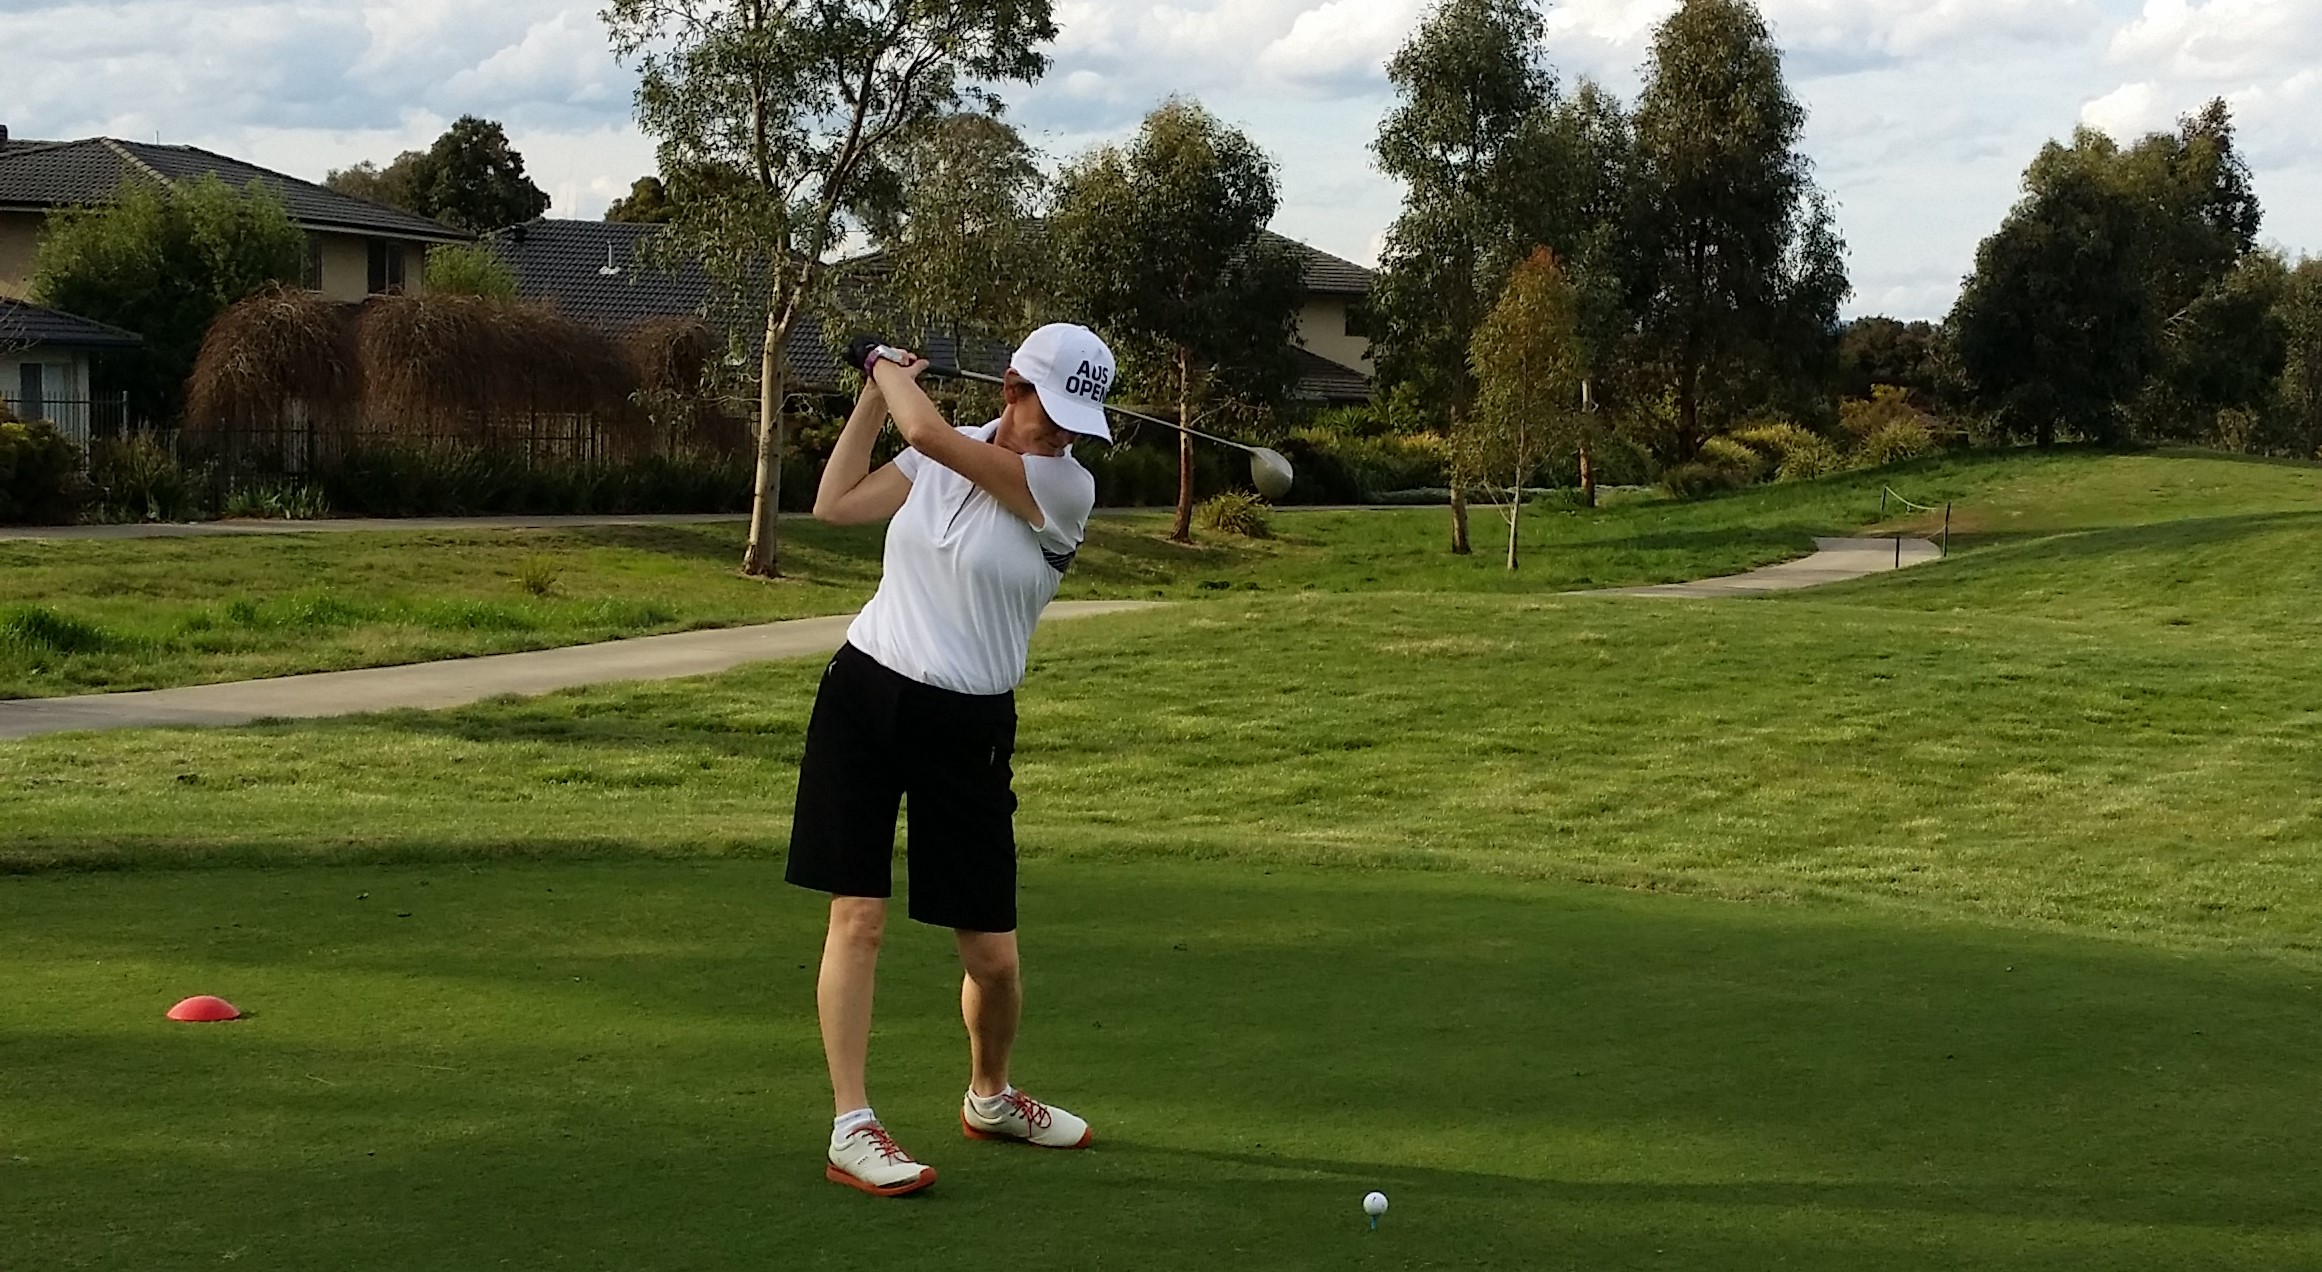 Golfing at the Sandhurst Golf Club in the outskirts of Melbourne. Can you spot what I'm doing incorrectly?